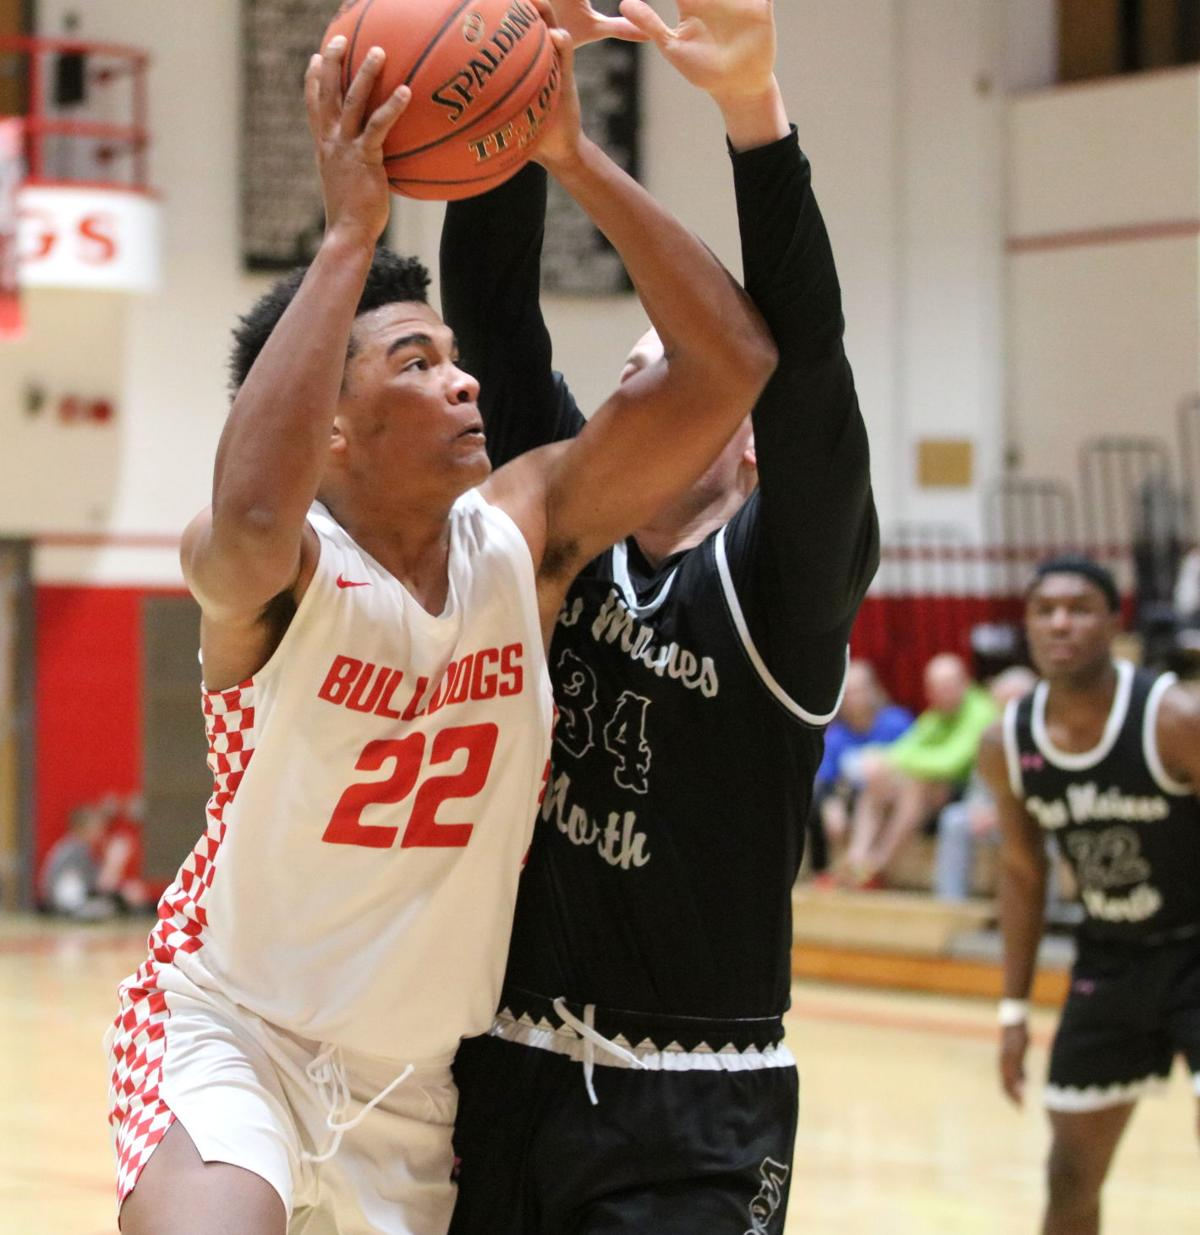 Boys basketball: A success on many fronts